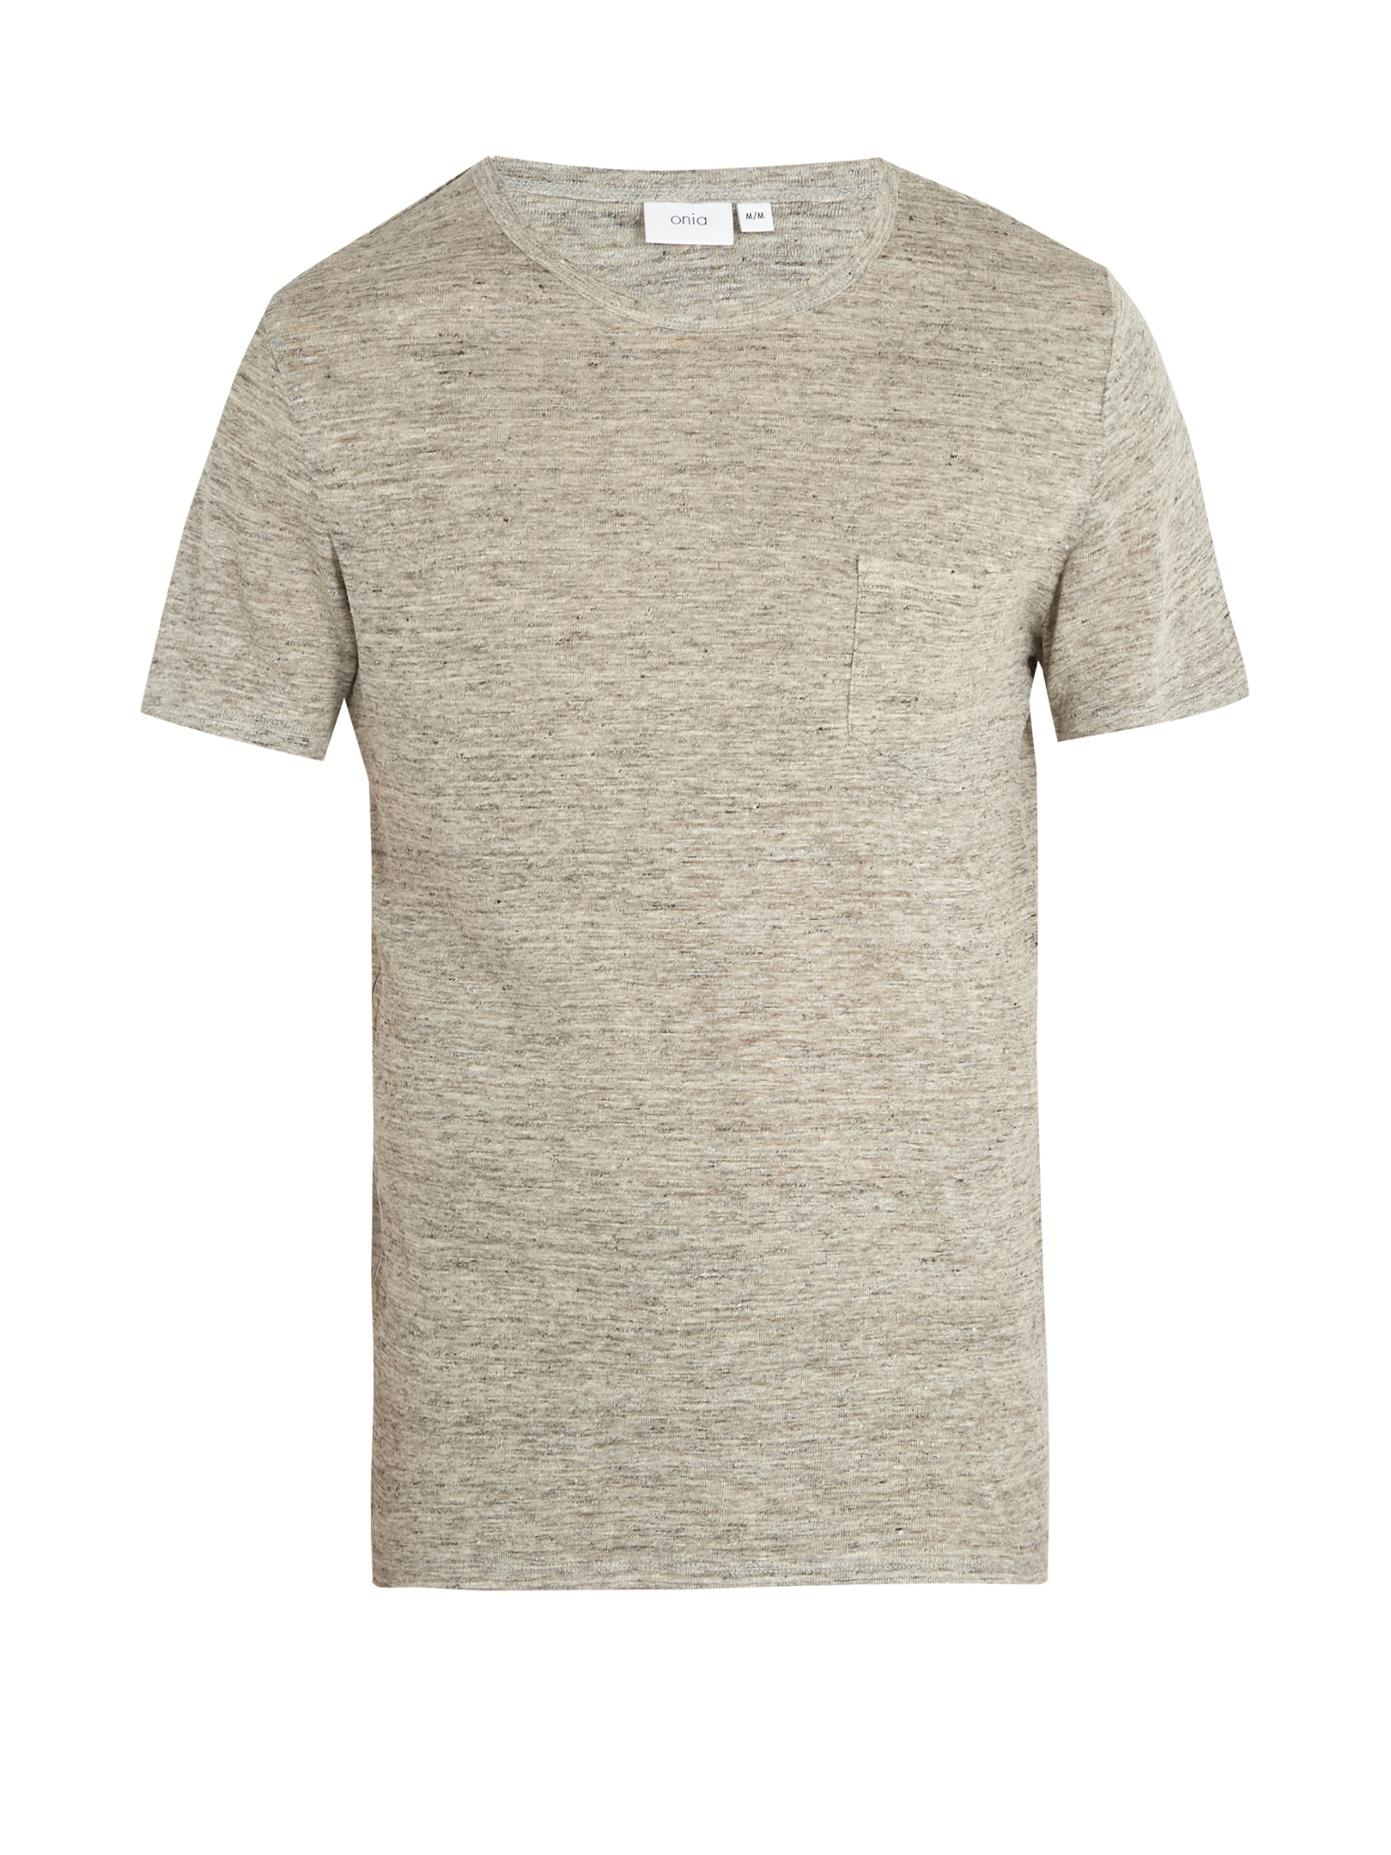 Free Shipping Pictures ONIA Chad Linen Blend Pocket T-Shirt Footlocker Finishline For Sale Cheap Sale Hot Sale Clearance Authentic v0Srh